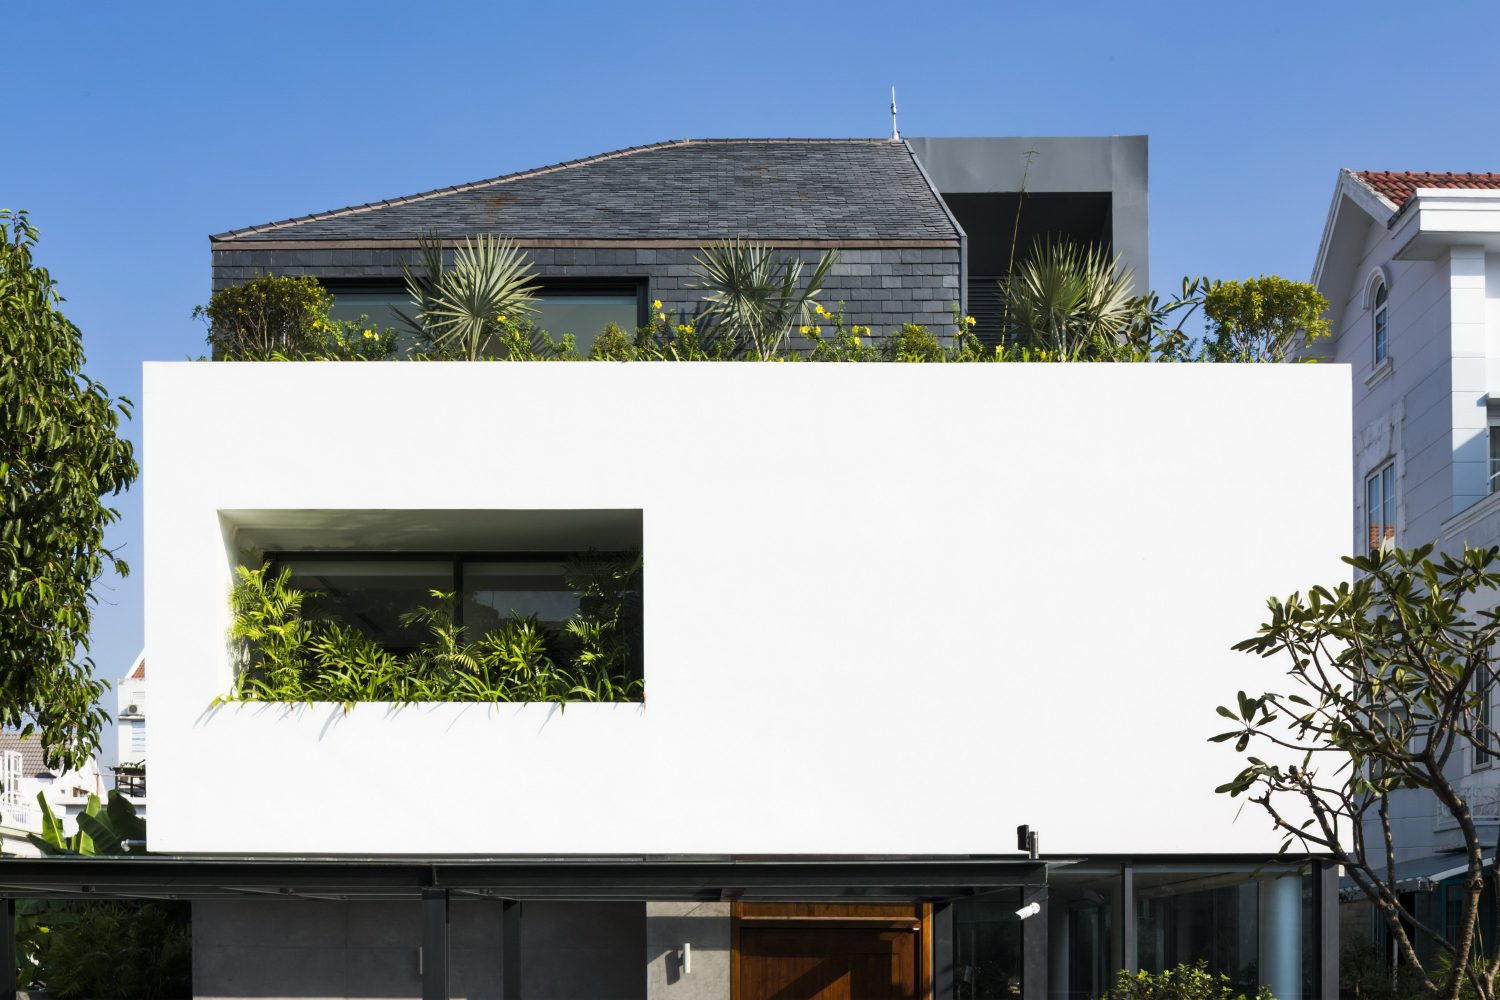 White Cube House | Minimalist Suburb House by MM++ architects